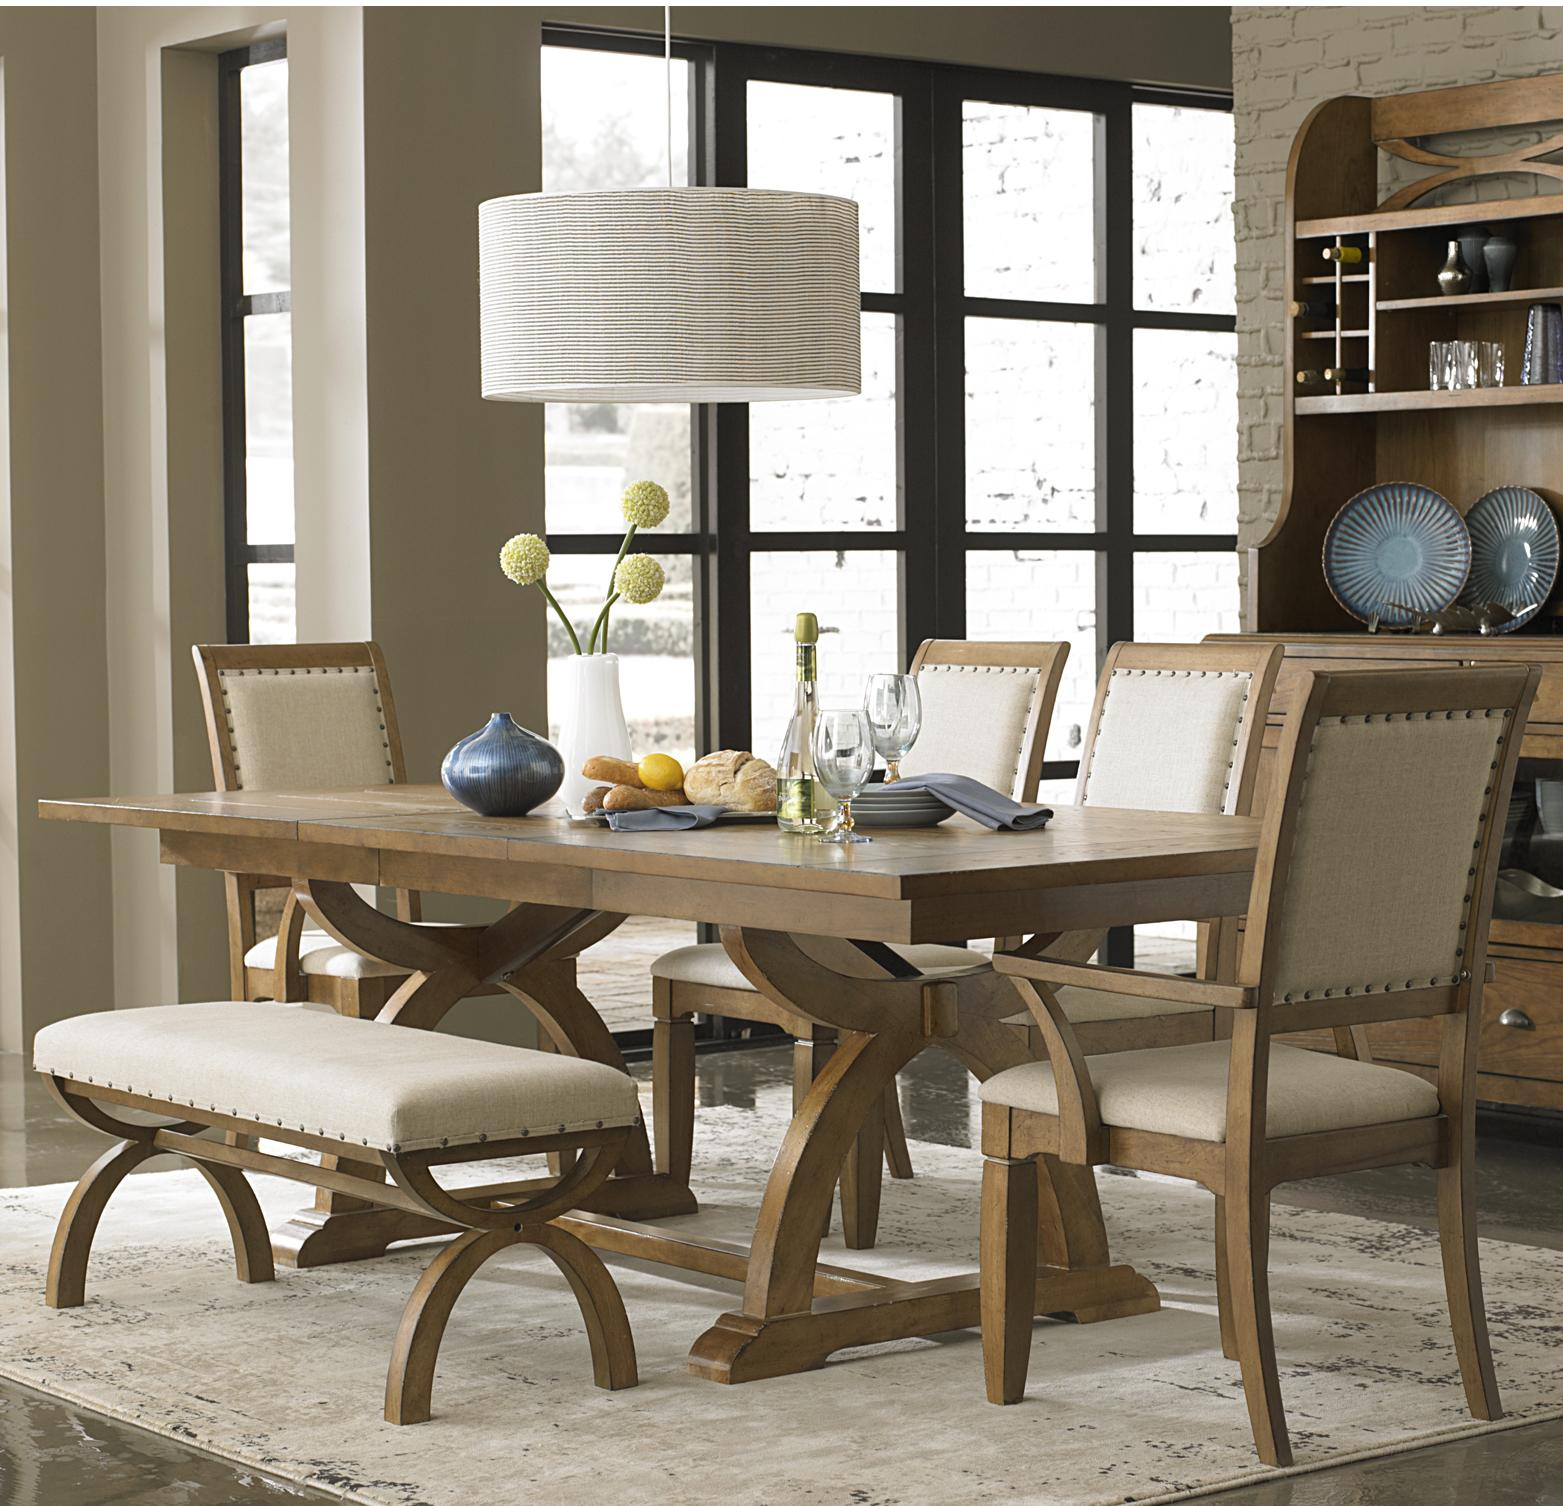 Wonderful 6 Piece Trestle Table Set With 4 Upholstered Chairs U0026 Dining Bench